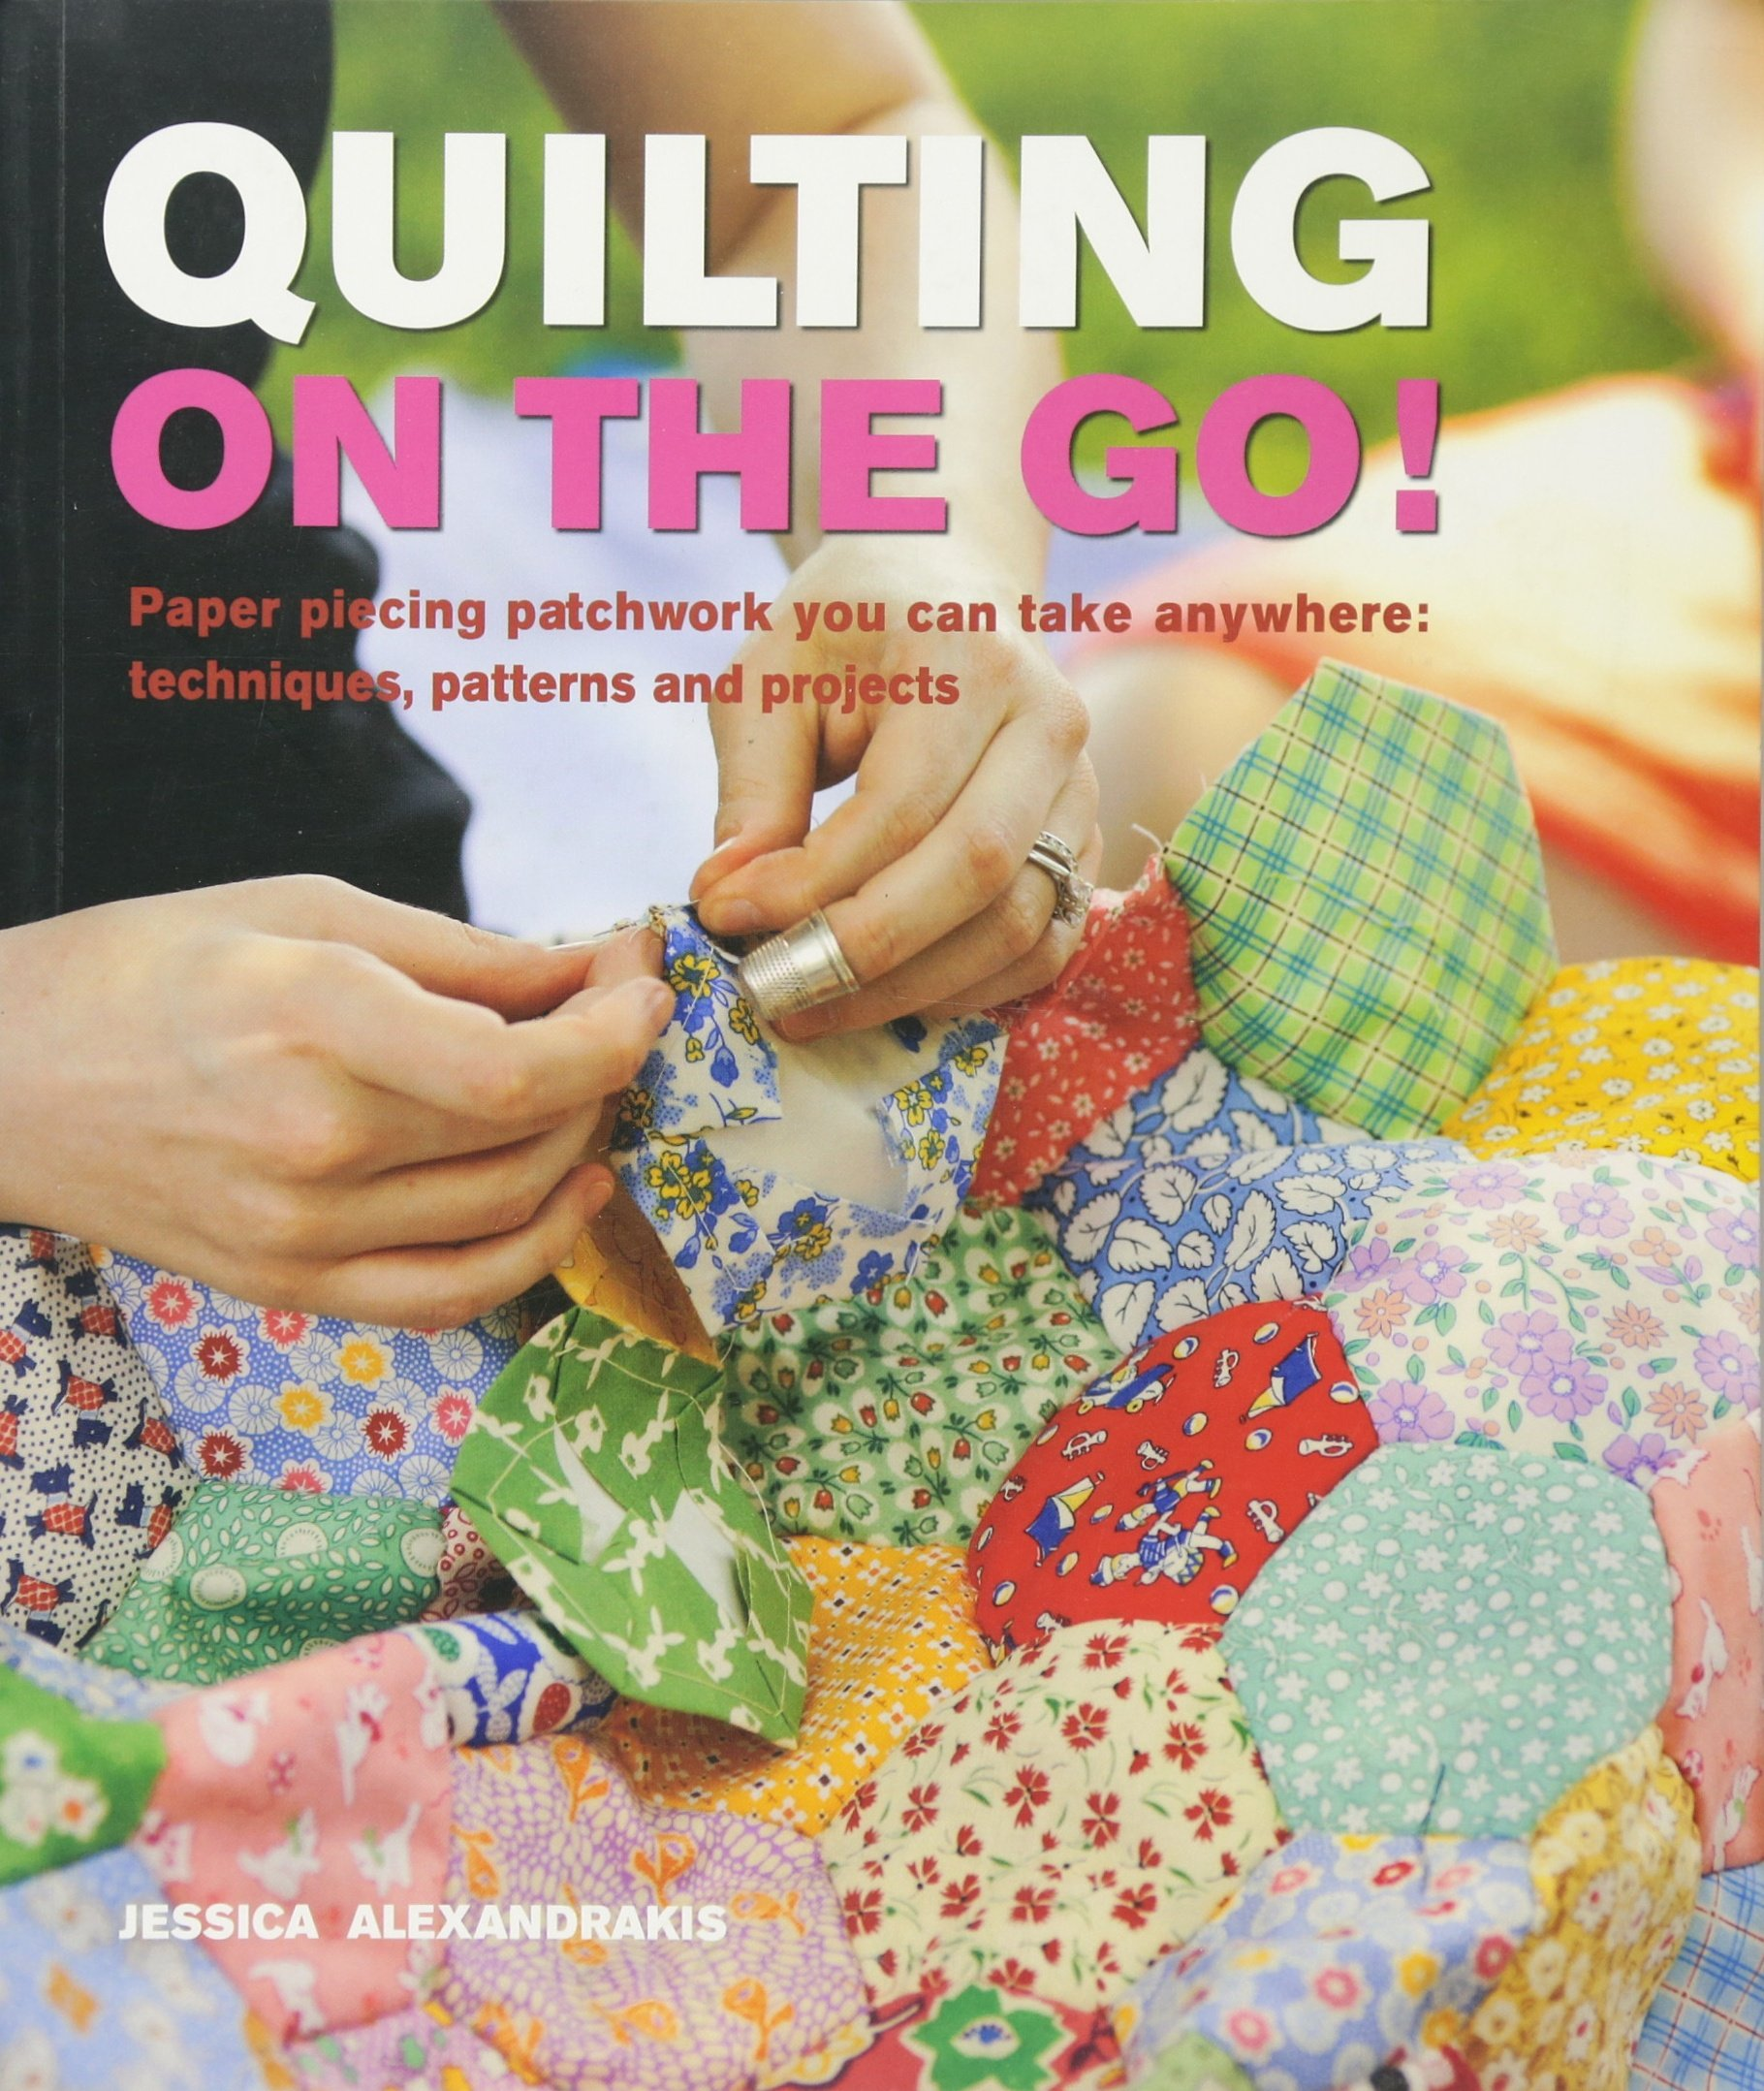 Quilting On The Go!: Paper Piecing Patchwork You Can Take Anywhere: Techniques, Patterns and Projects